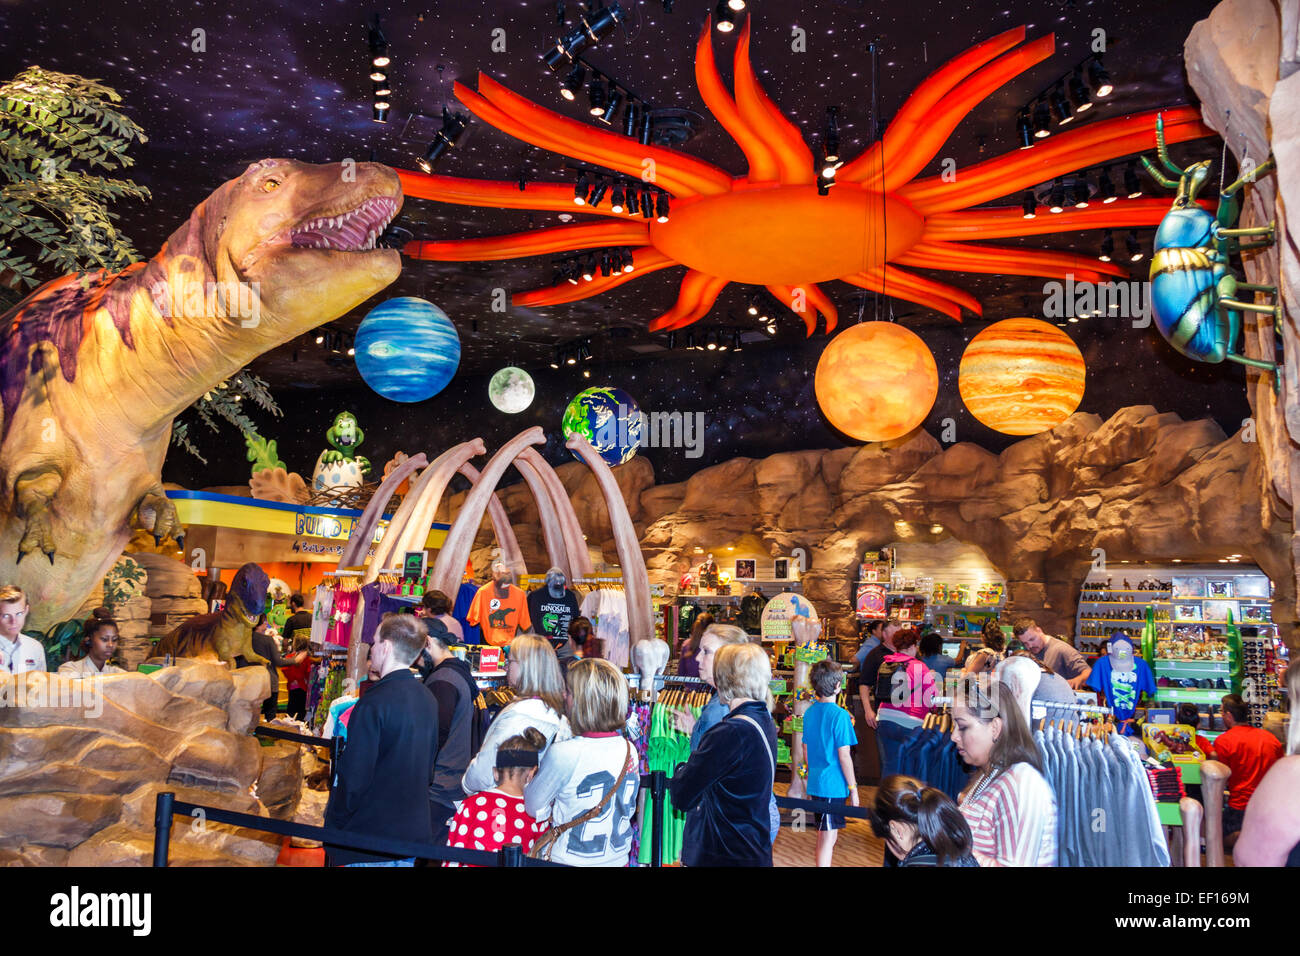 Orlando Florida Lake Buena Vista Downtown Disney shopping dining entertainment T-Rex restaurant inside dinosaur - Stock Image